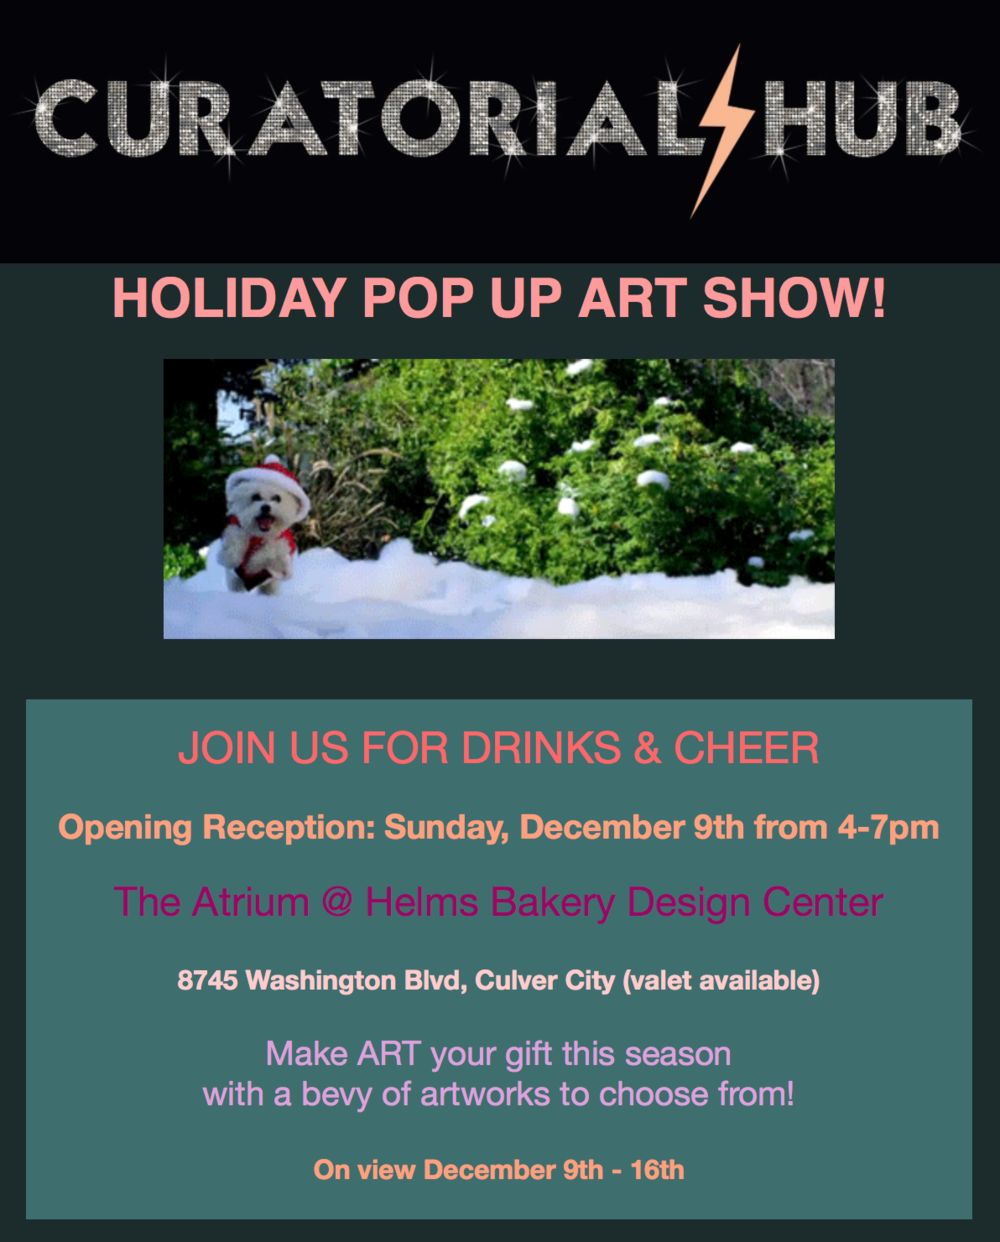 curatorialhubchristmasshow